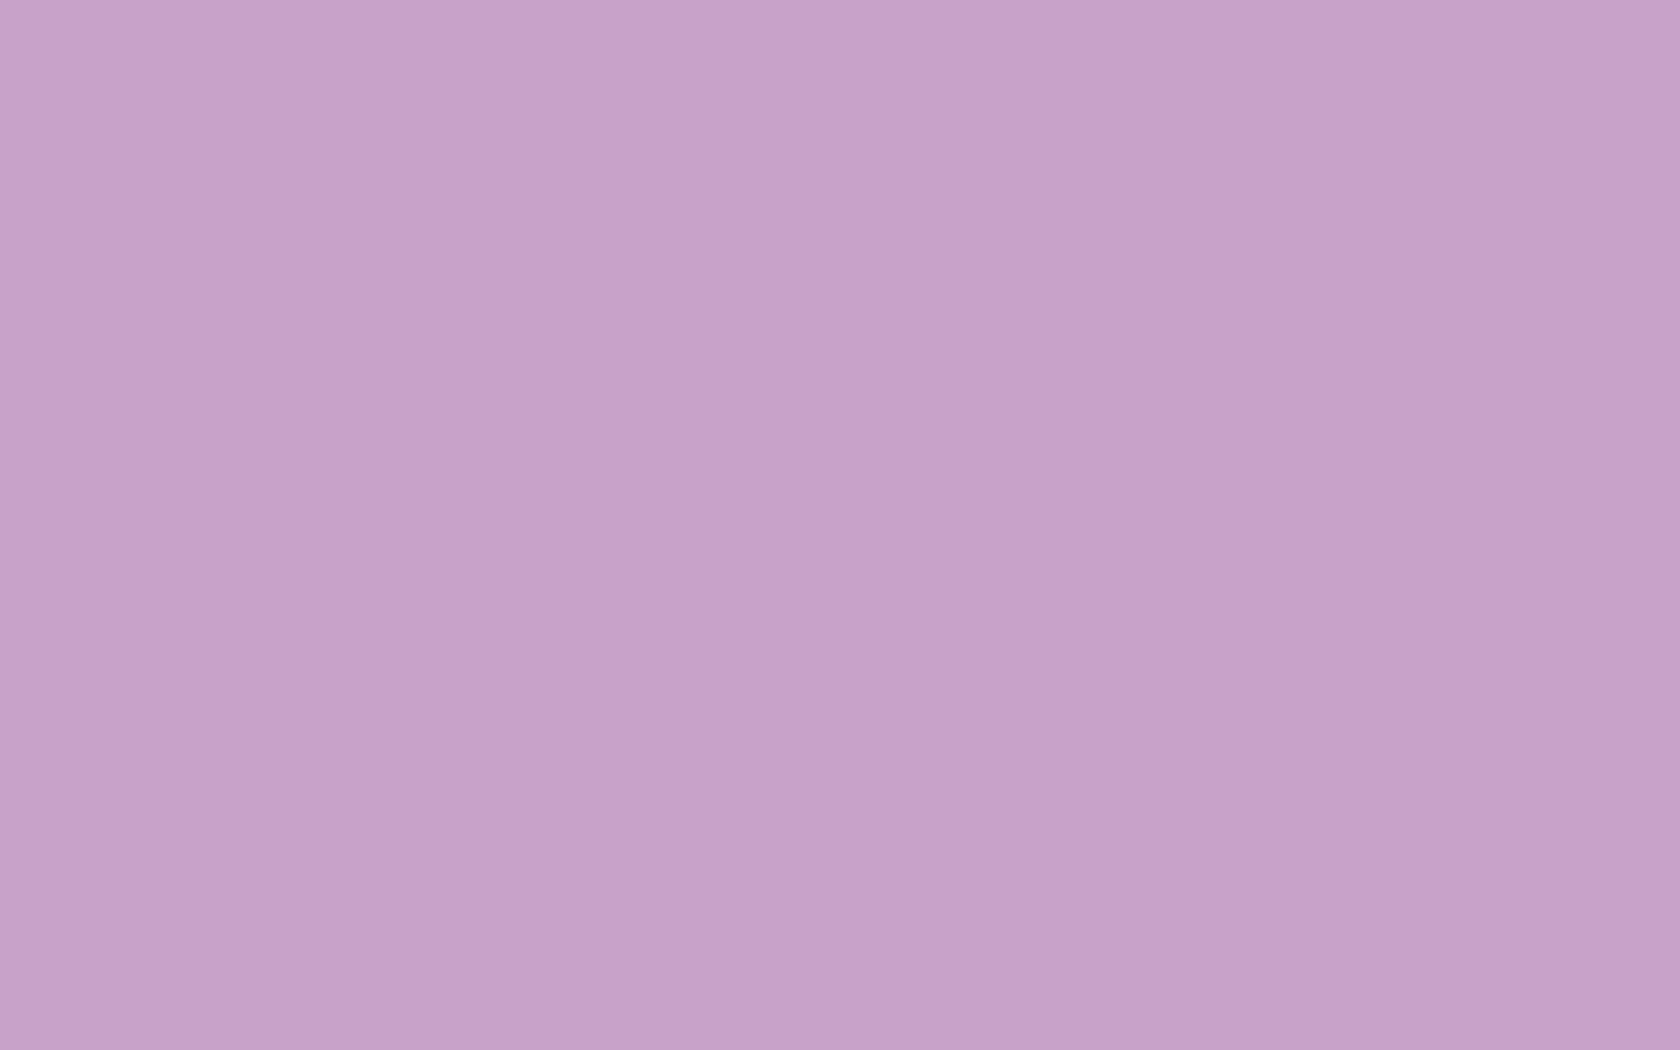 1680x1050 Lilac Solid Color Background